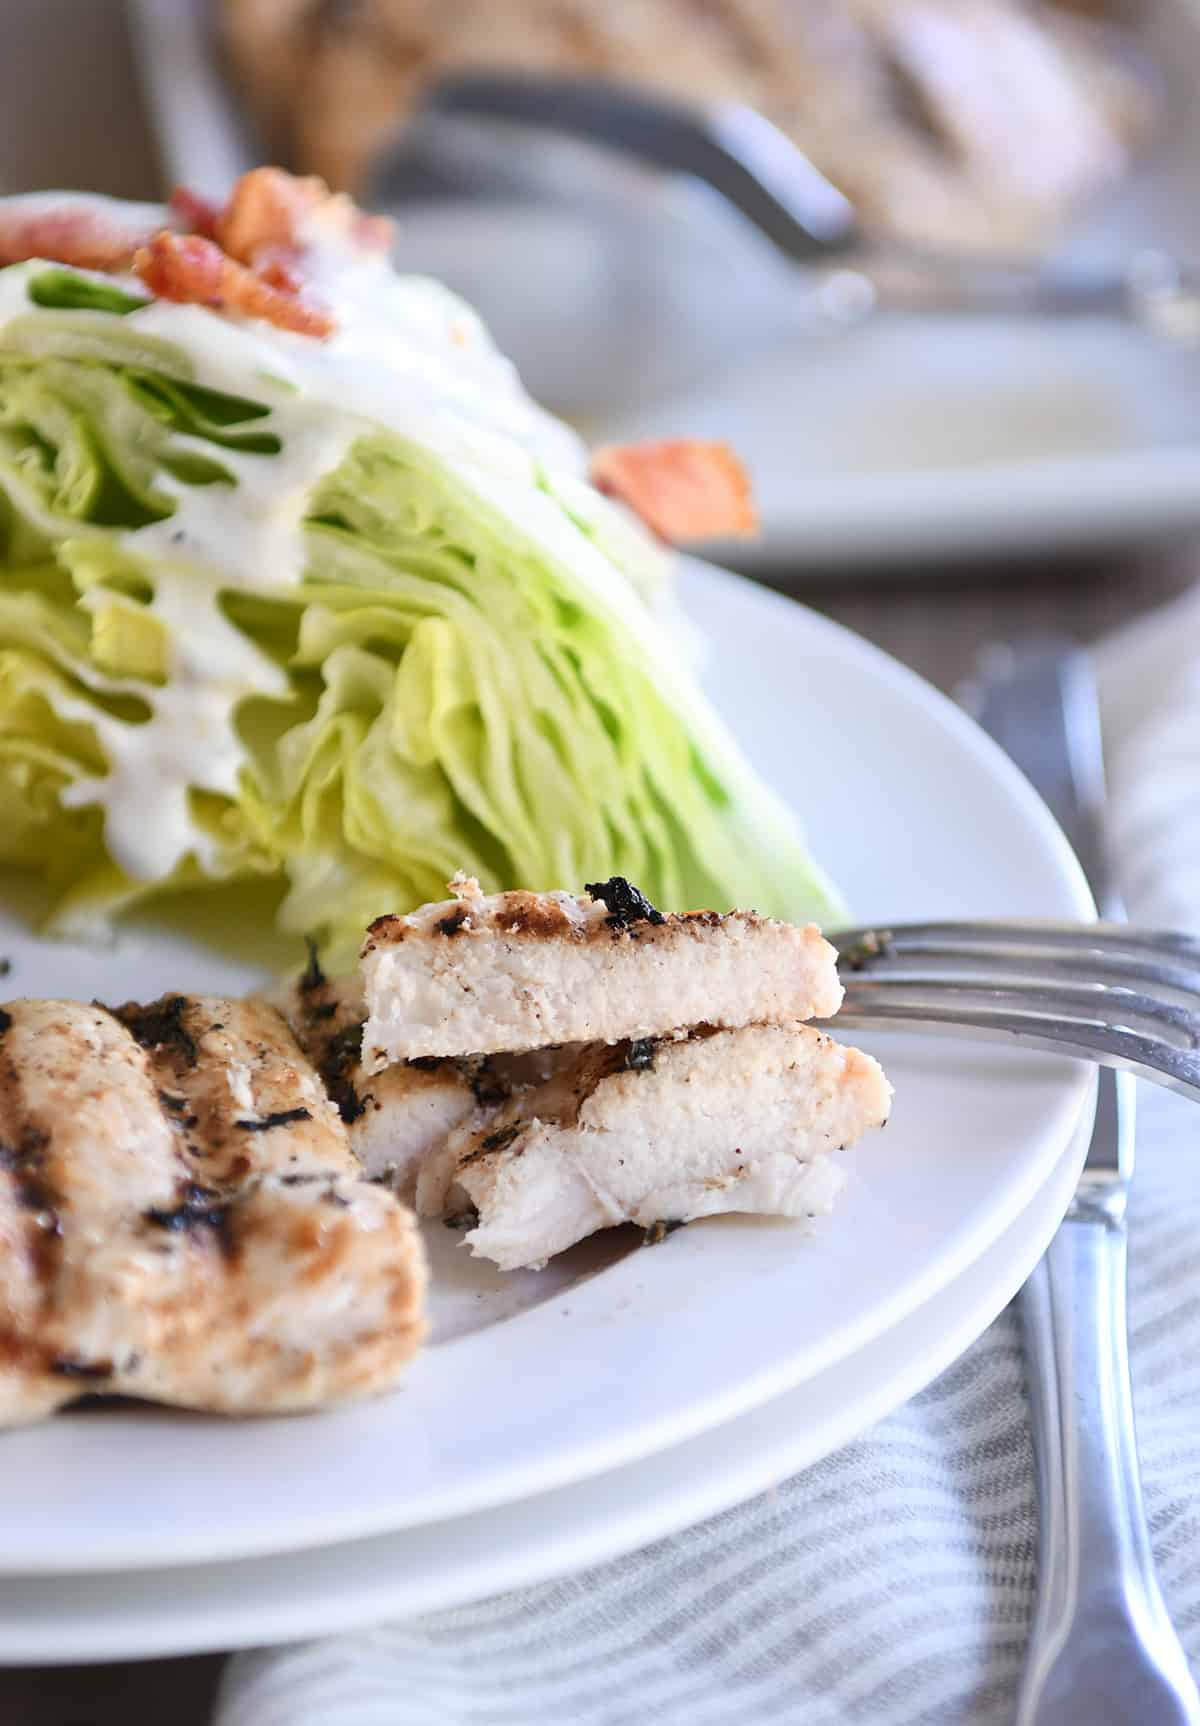 Lemon garlic grilled chicken cut into pieces on white plate.